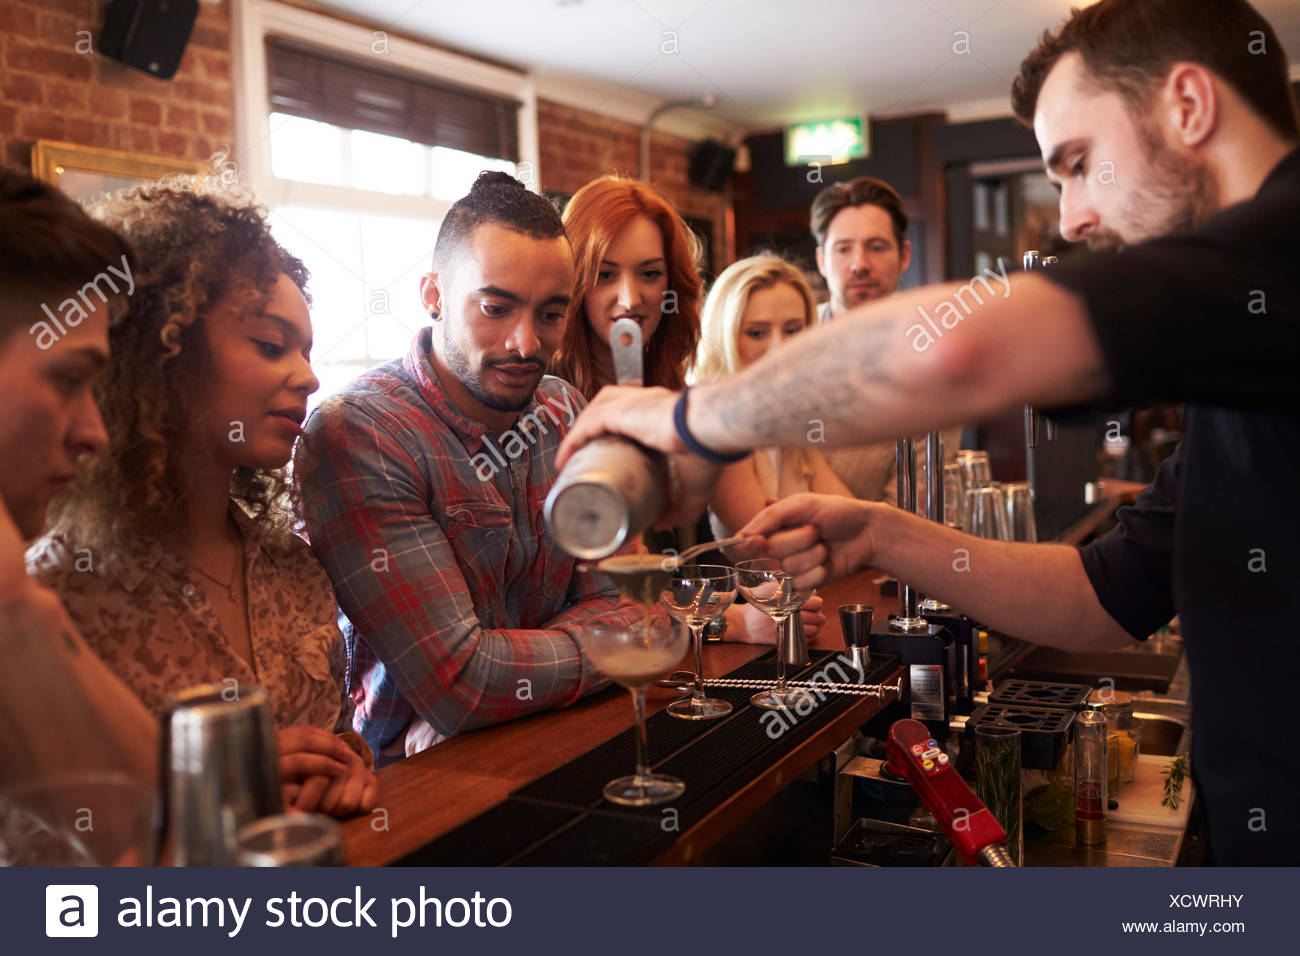 Bartender Giving Cocktail Making Lesson to Friends In Bar - Stock Image